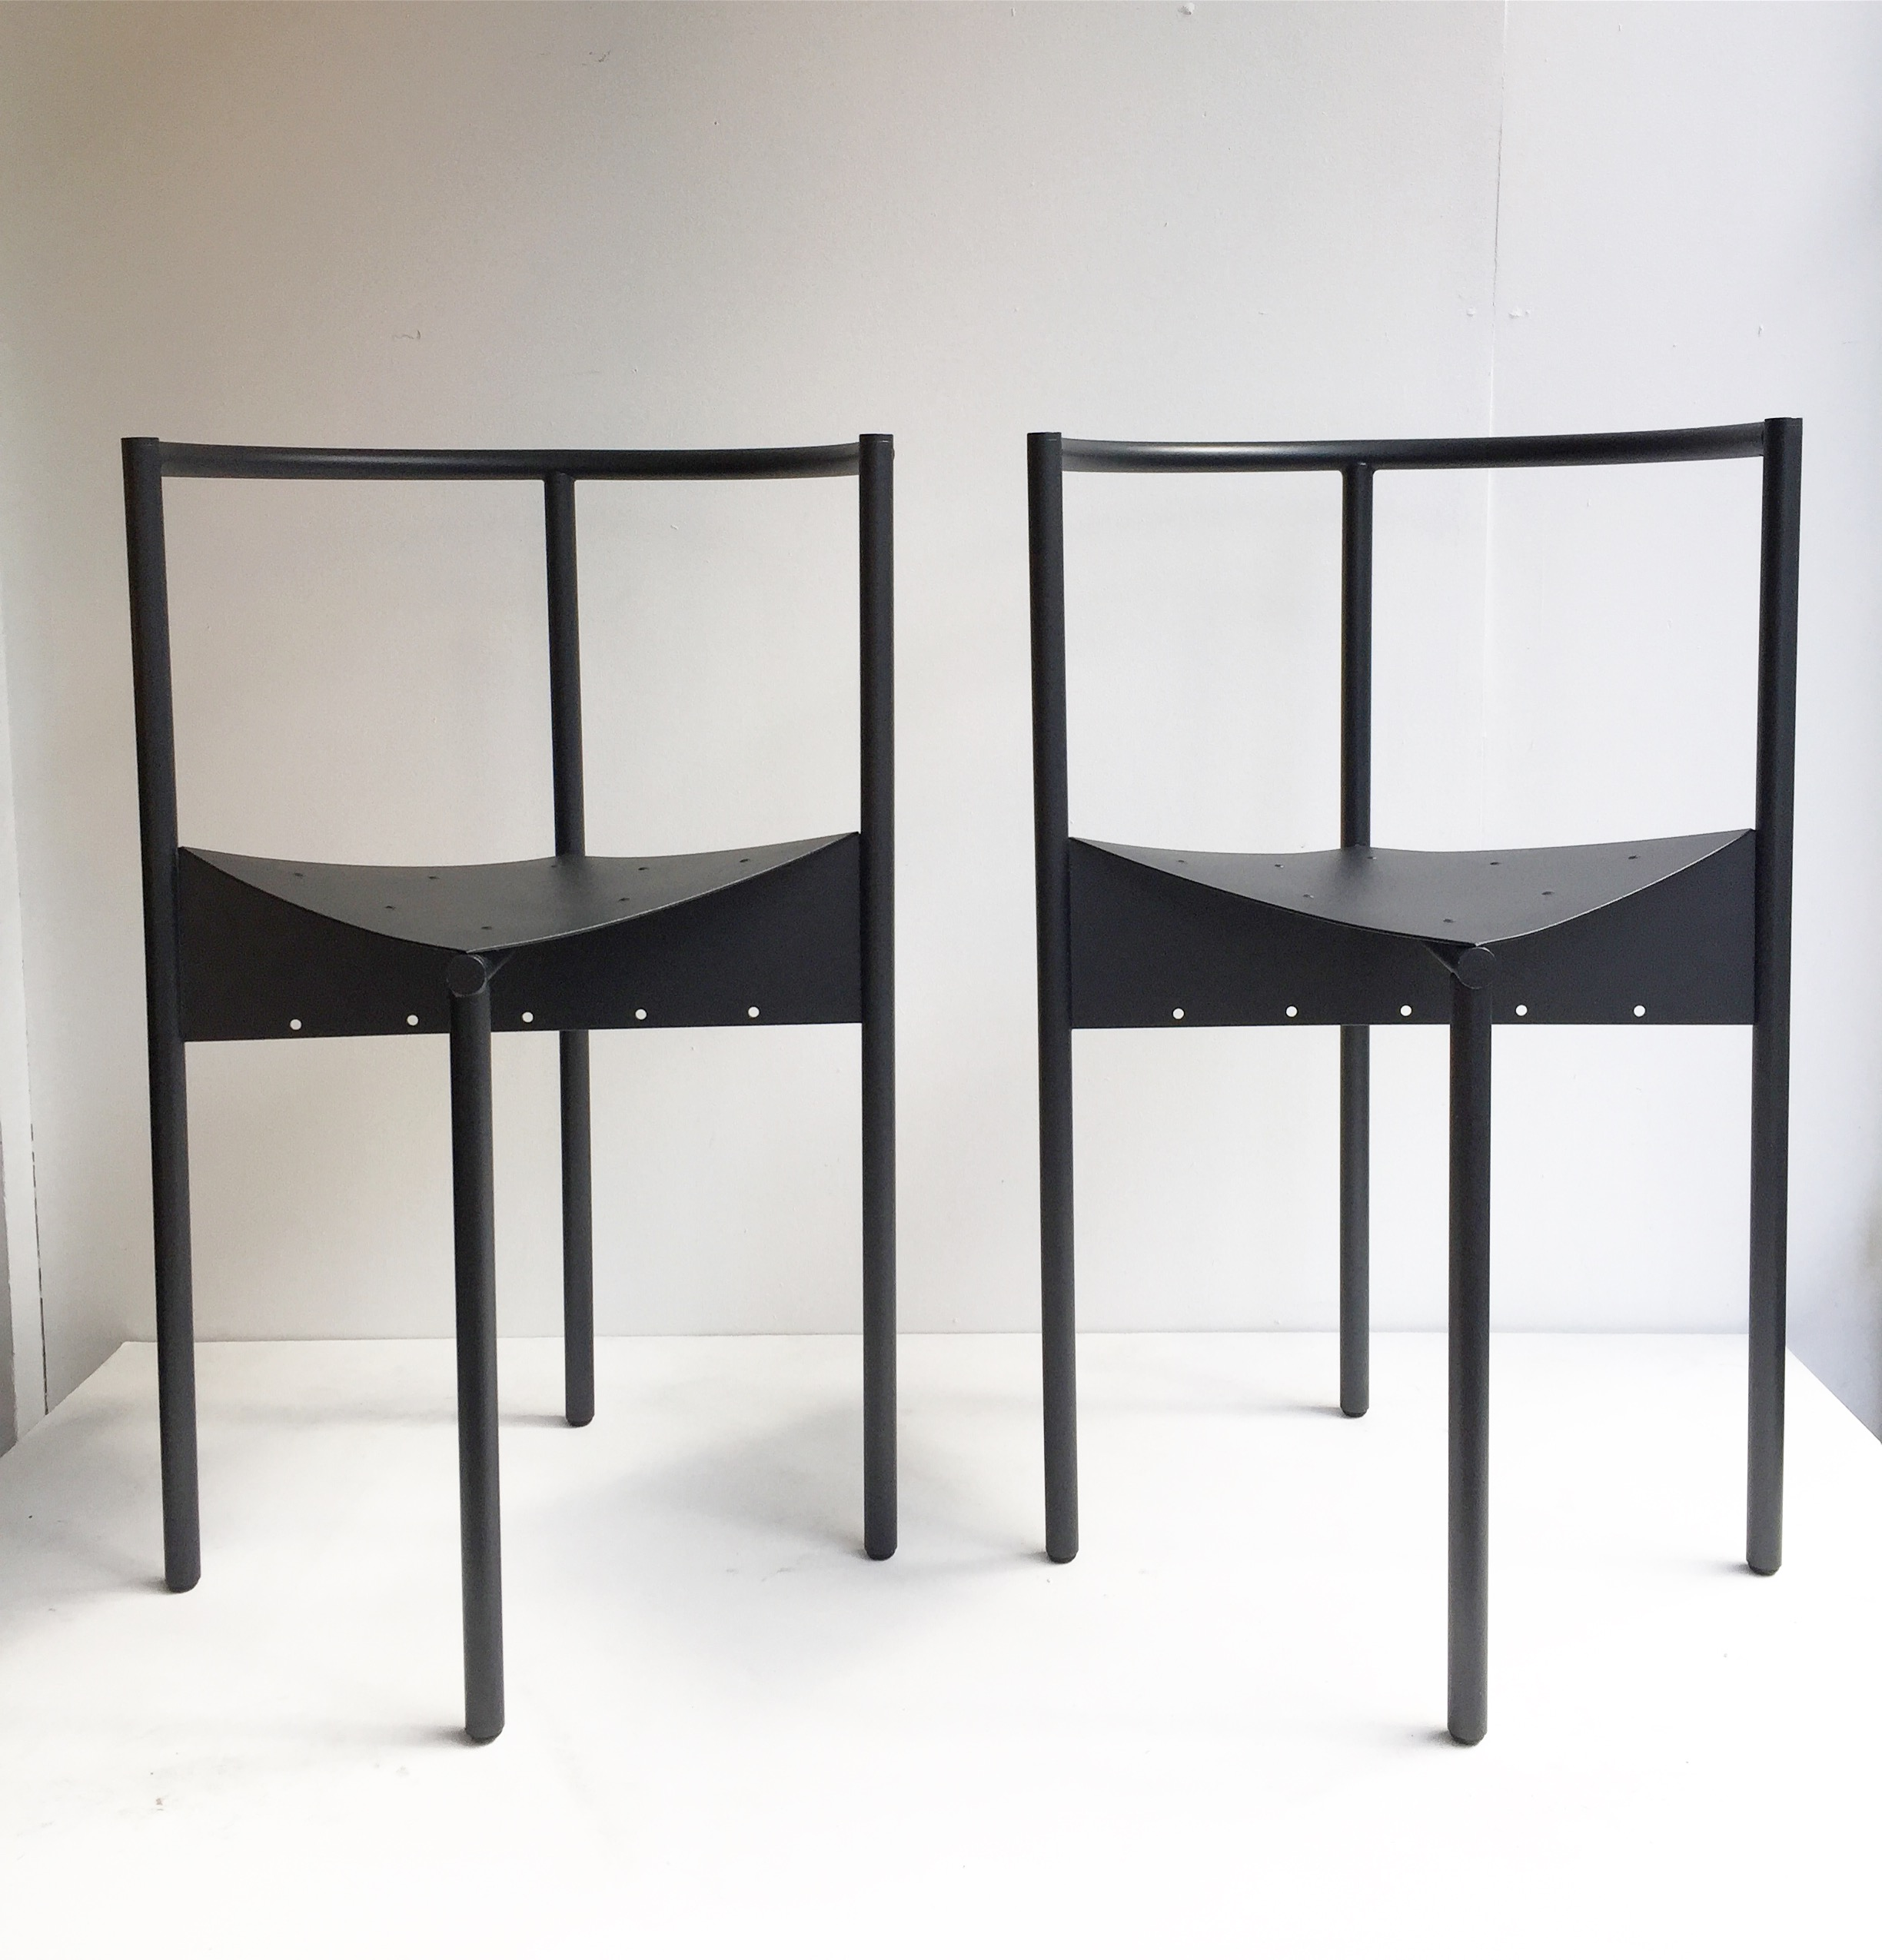 chaises wendy wright philippe starck ed disform années 80